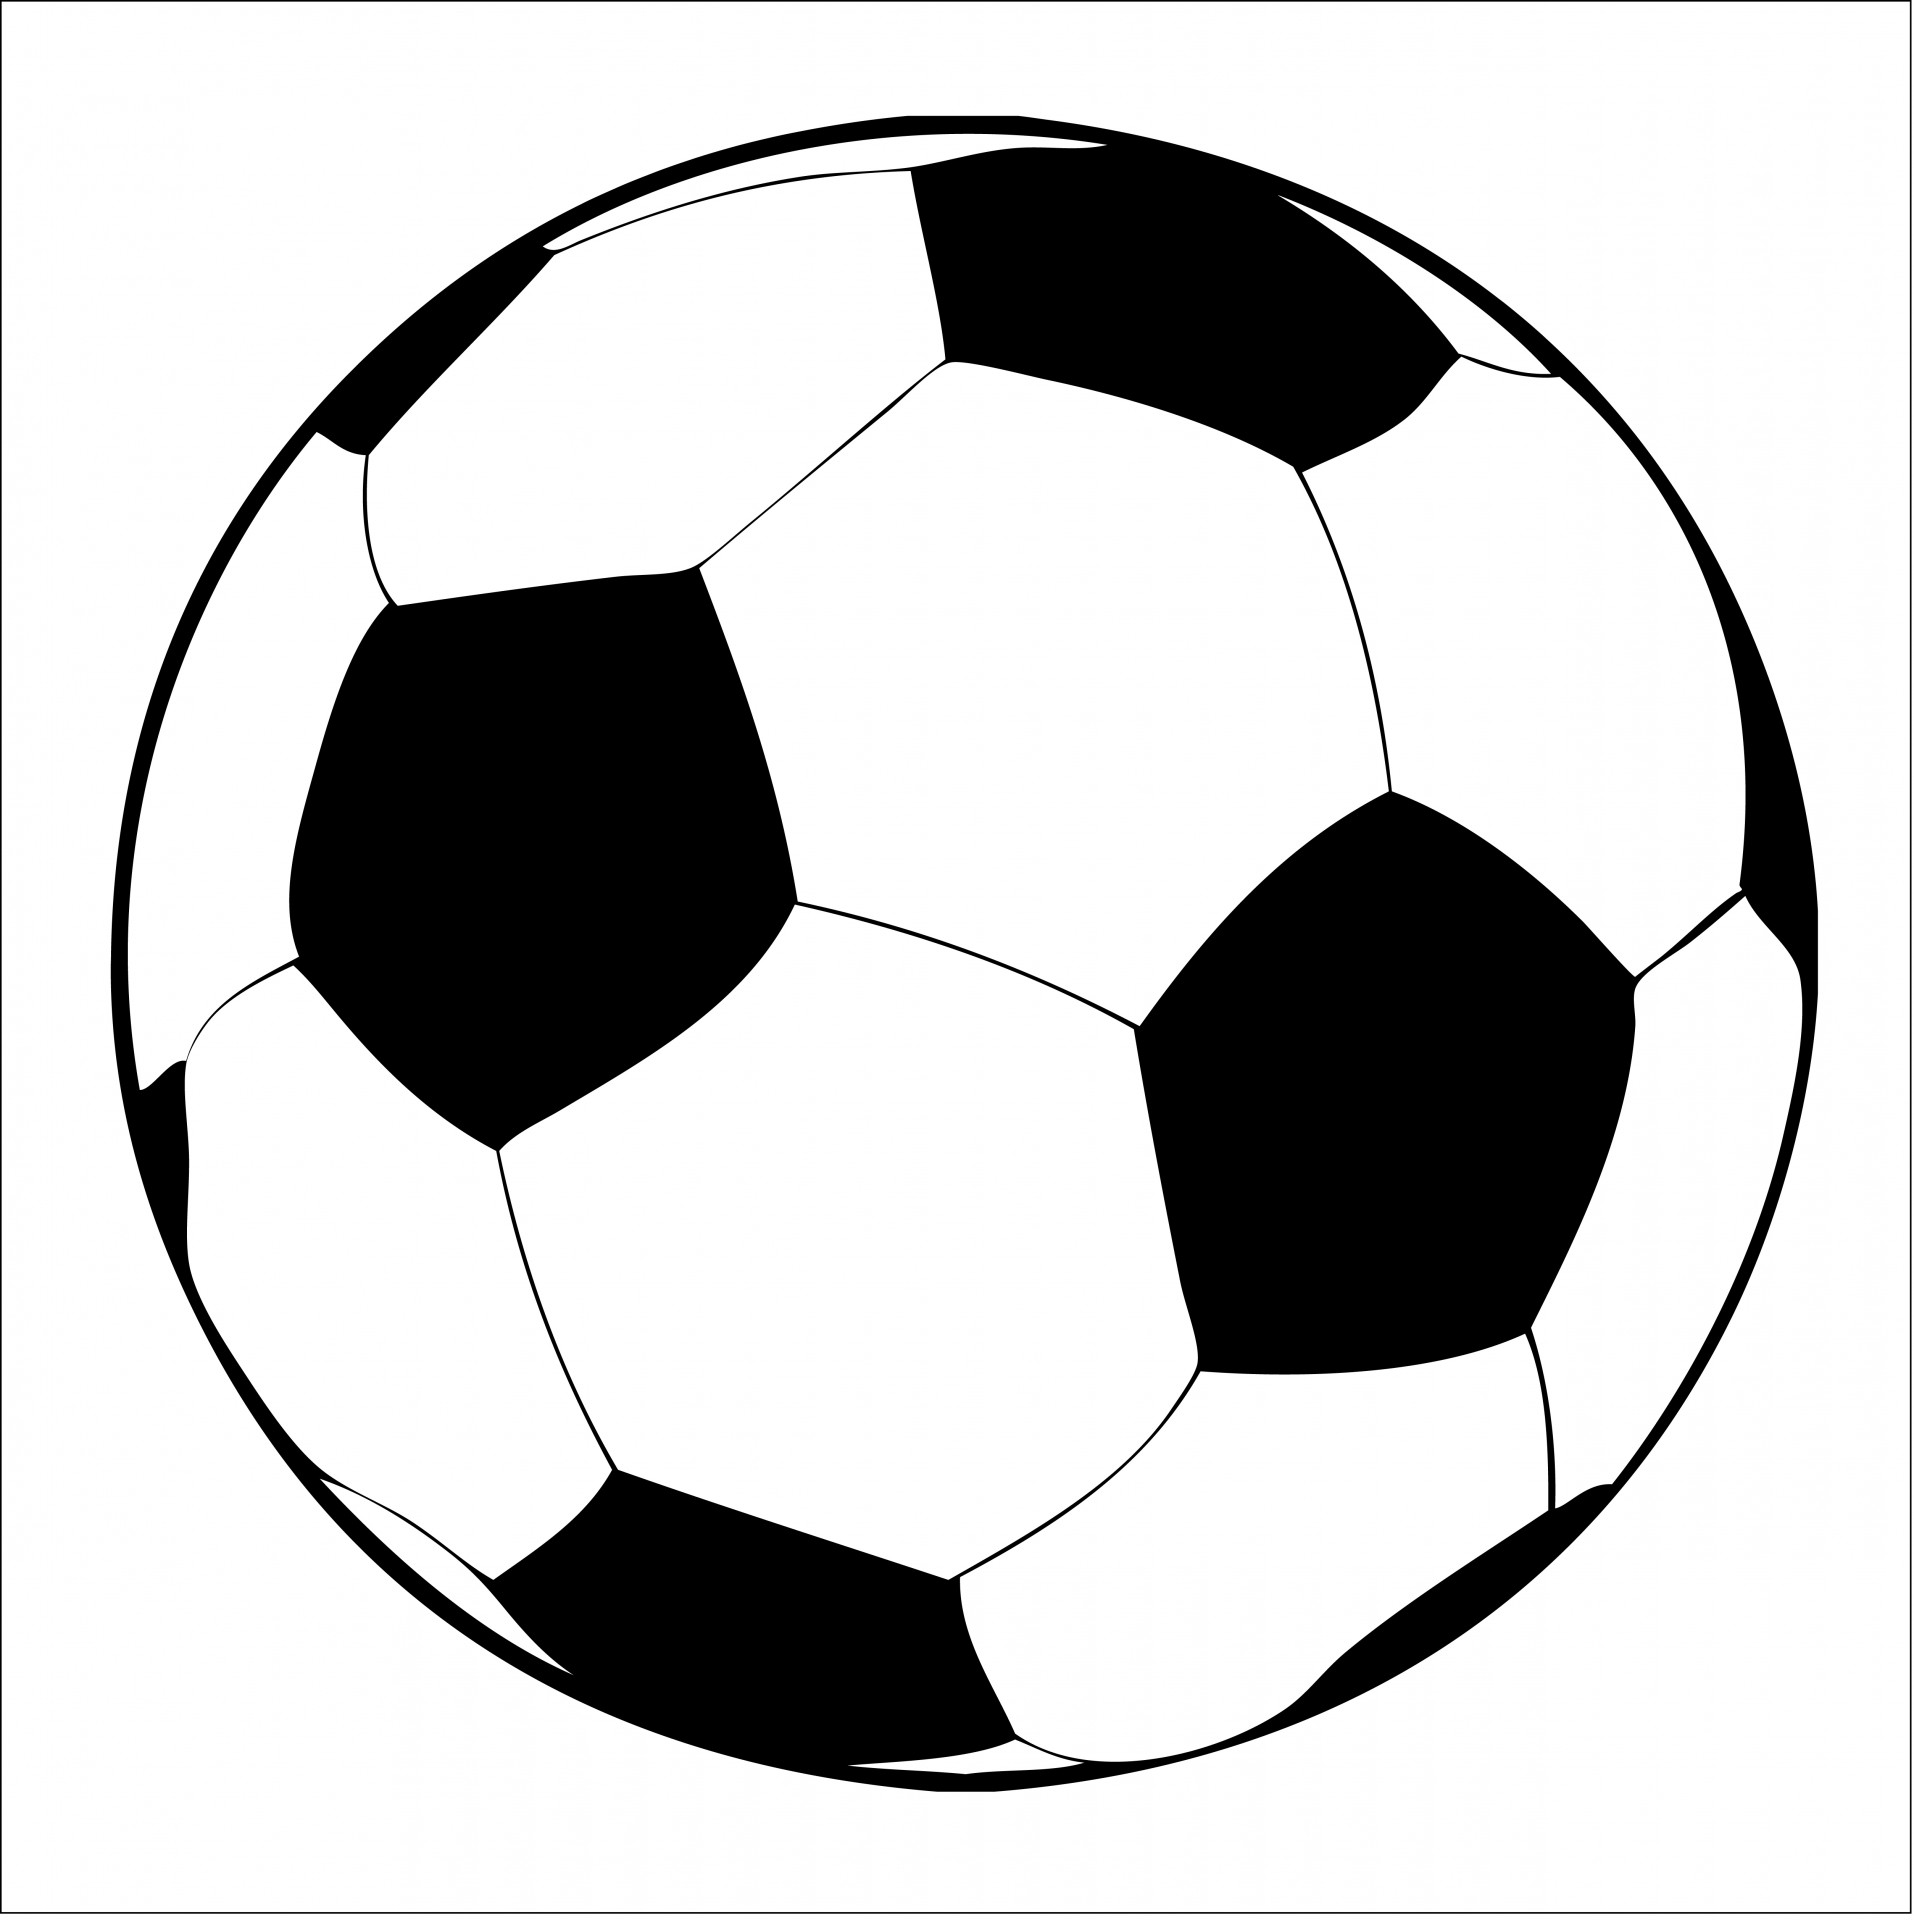 Picture clipart ball. Soccer free stock photo